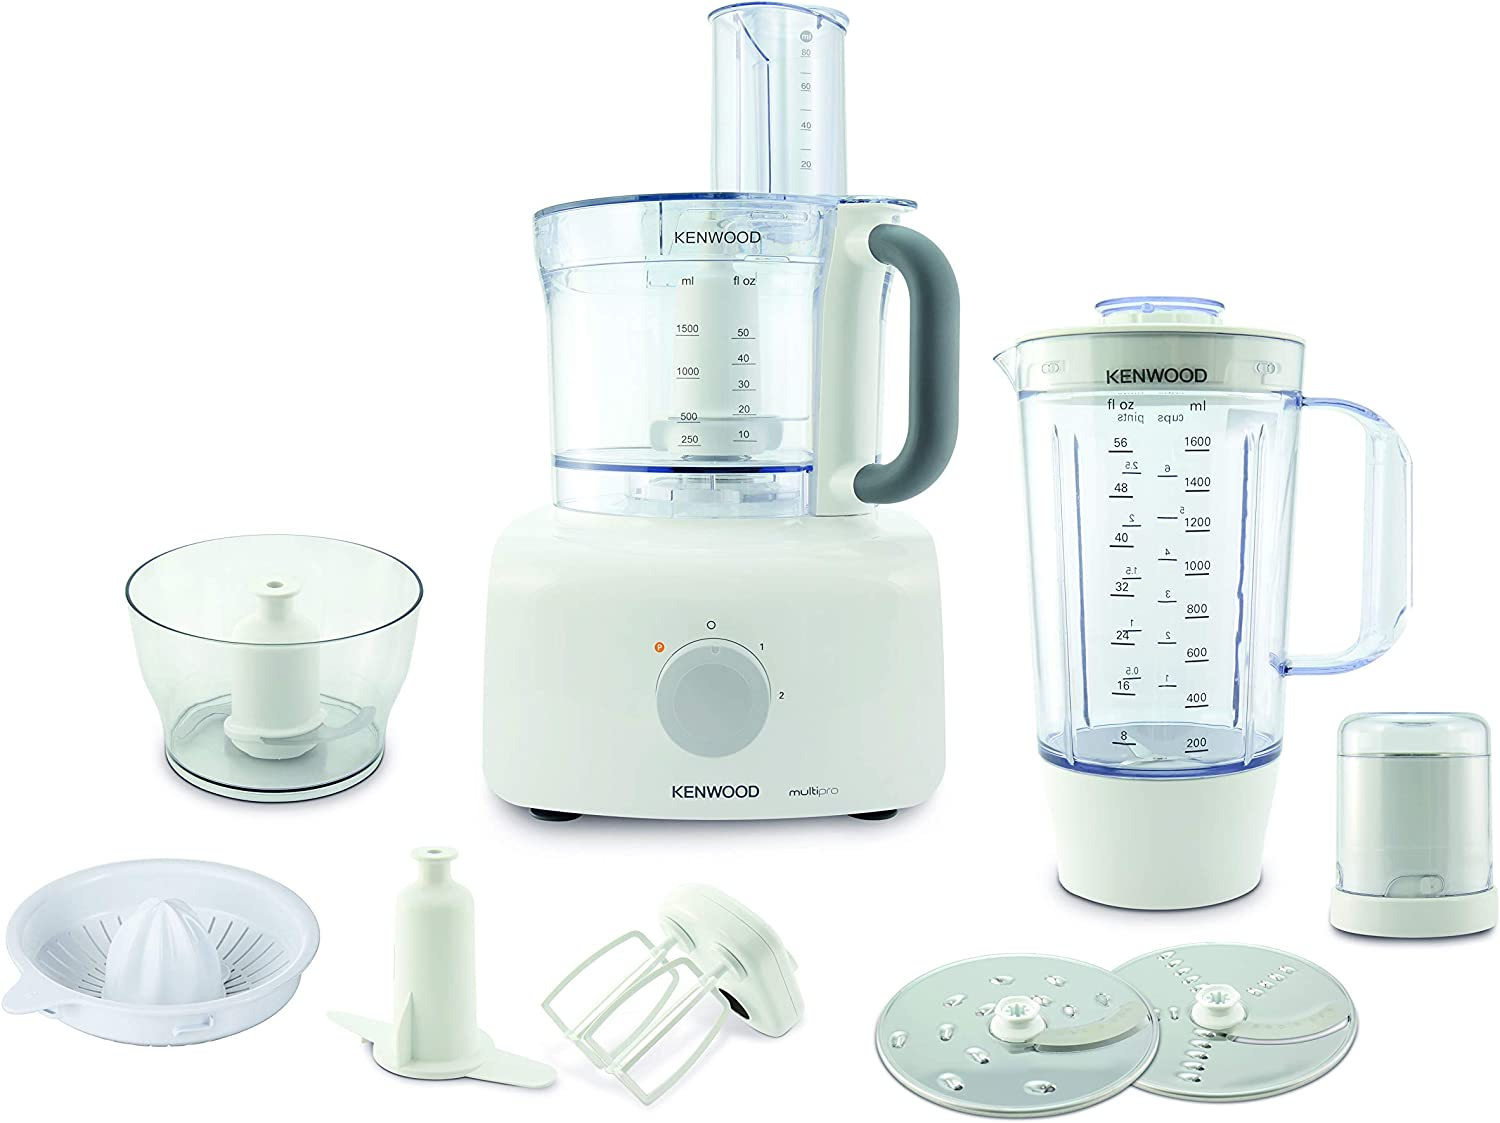 Blenders | Kenwood Blender, Food